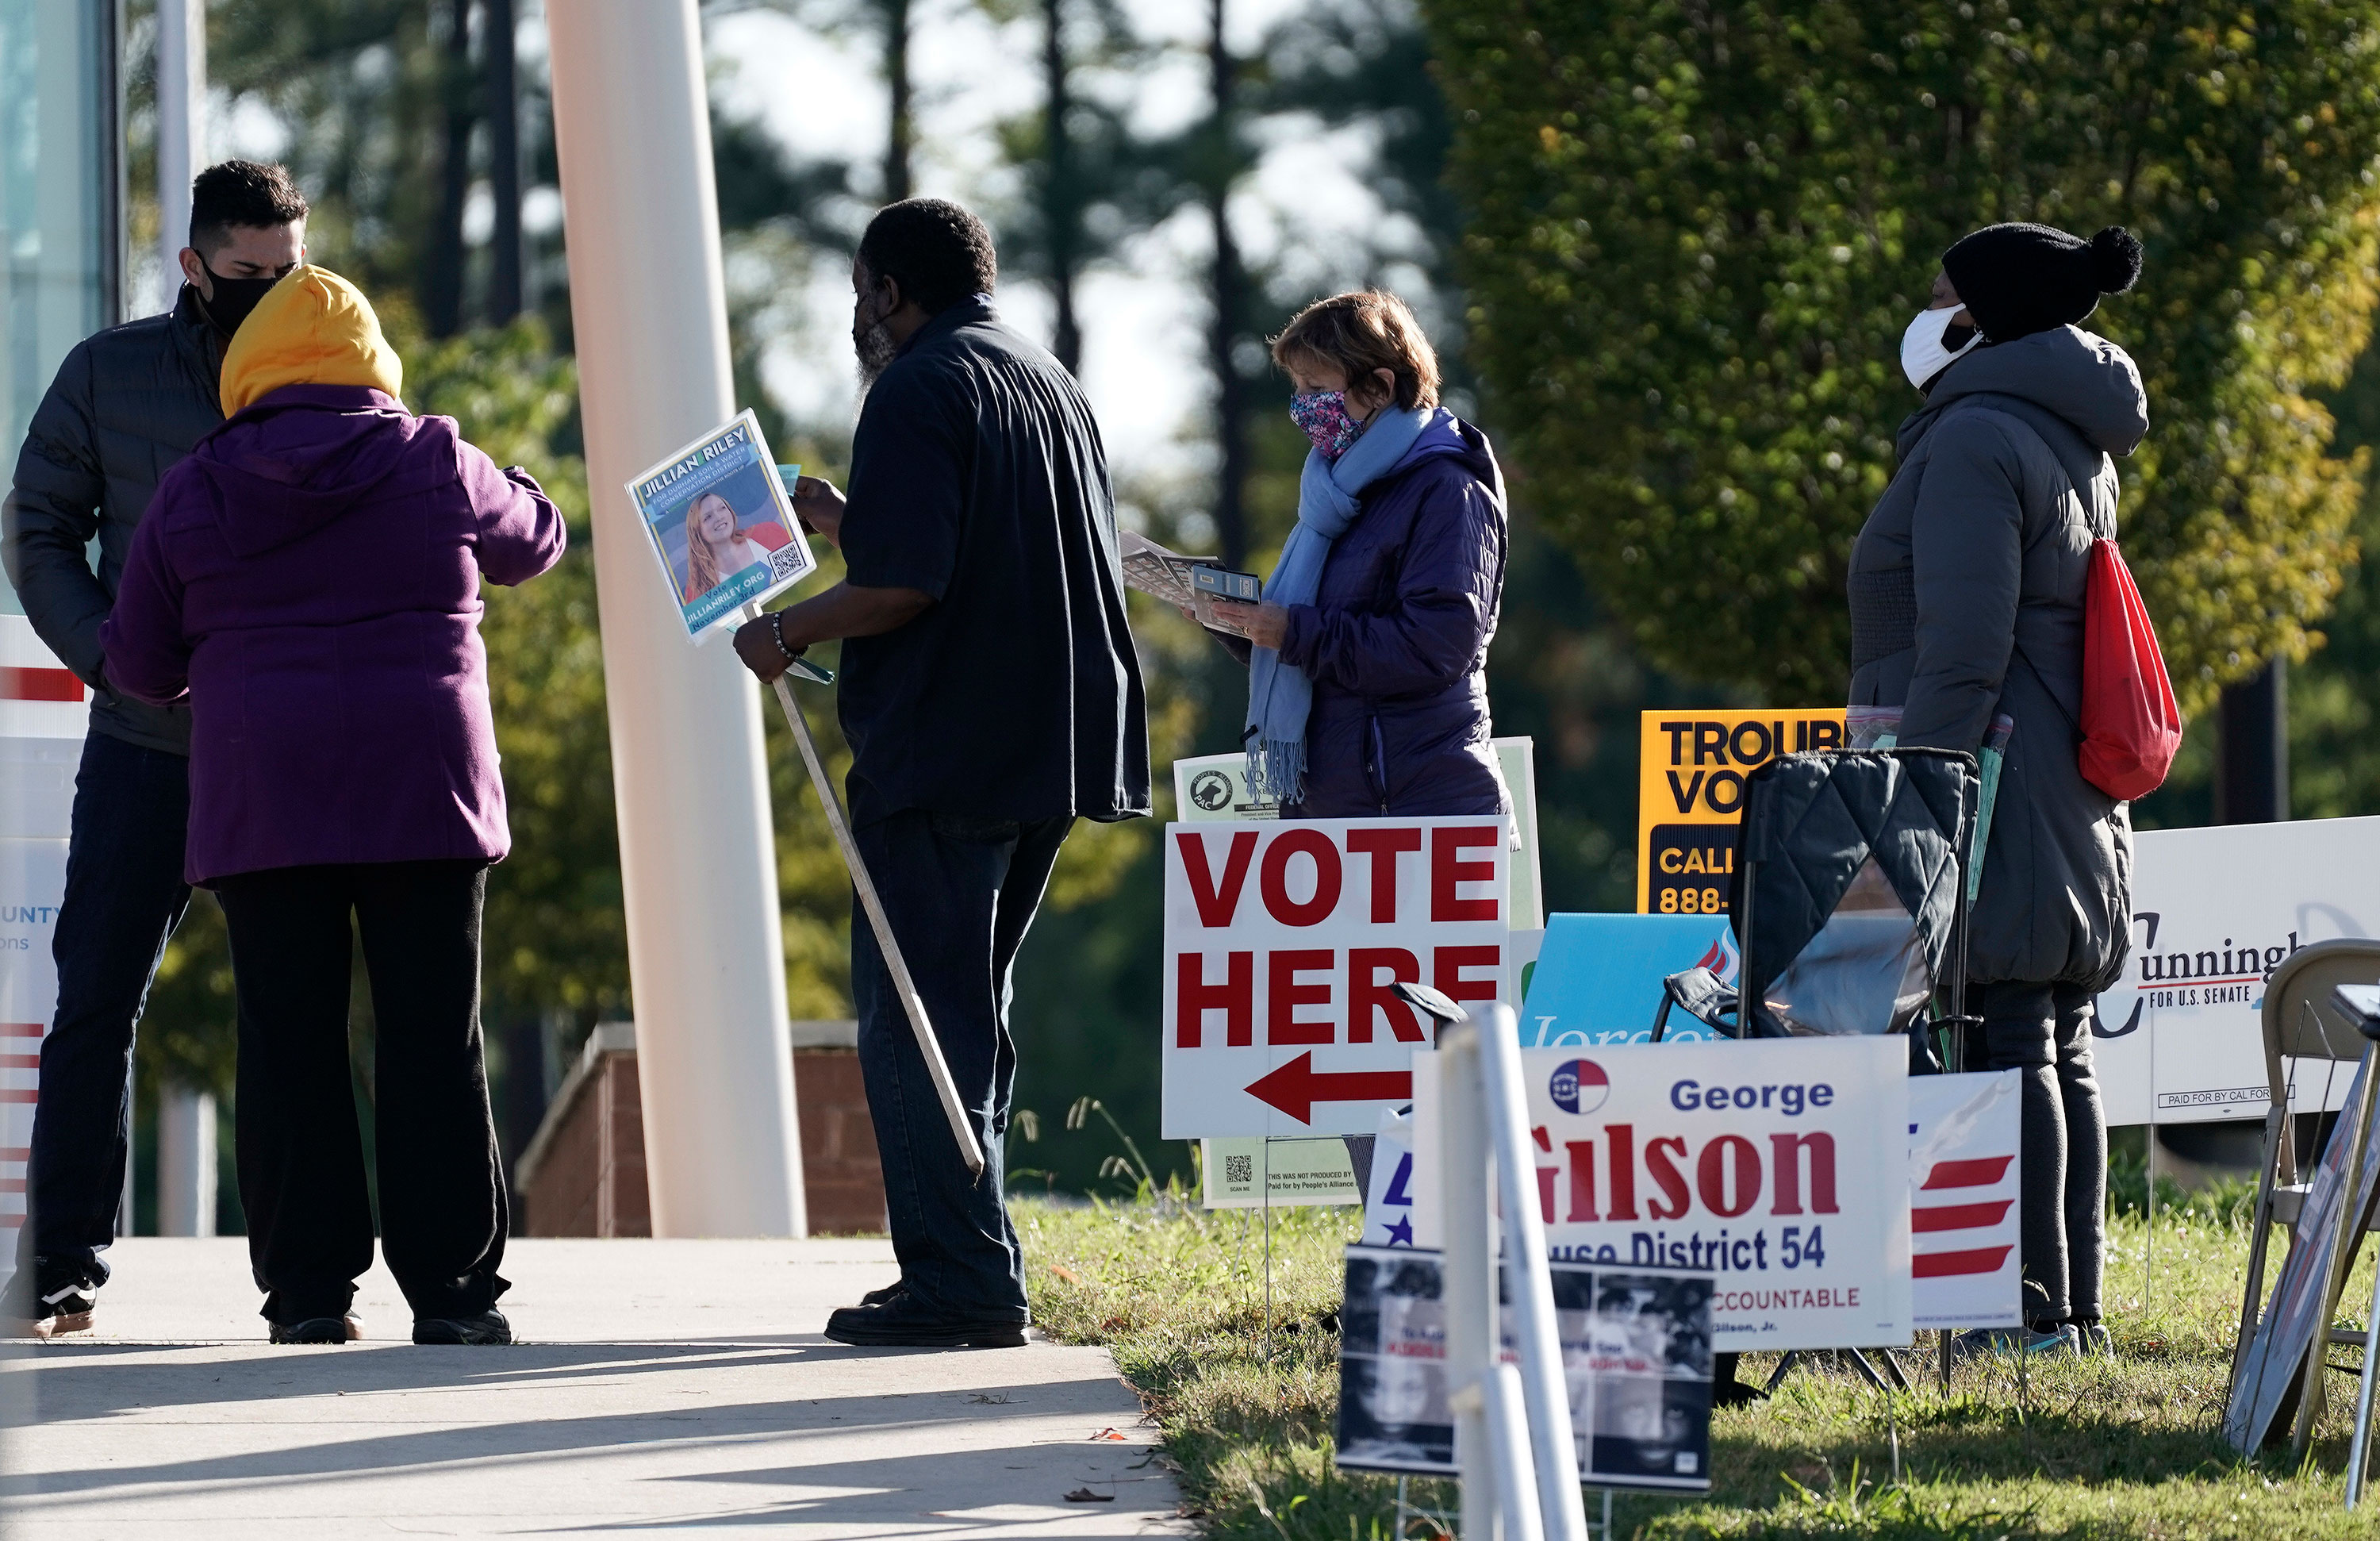 Voters wait in line at a polling location in Durham, North Carolina on Tuesday, November 3.